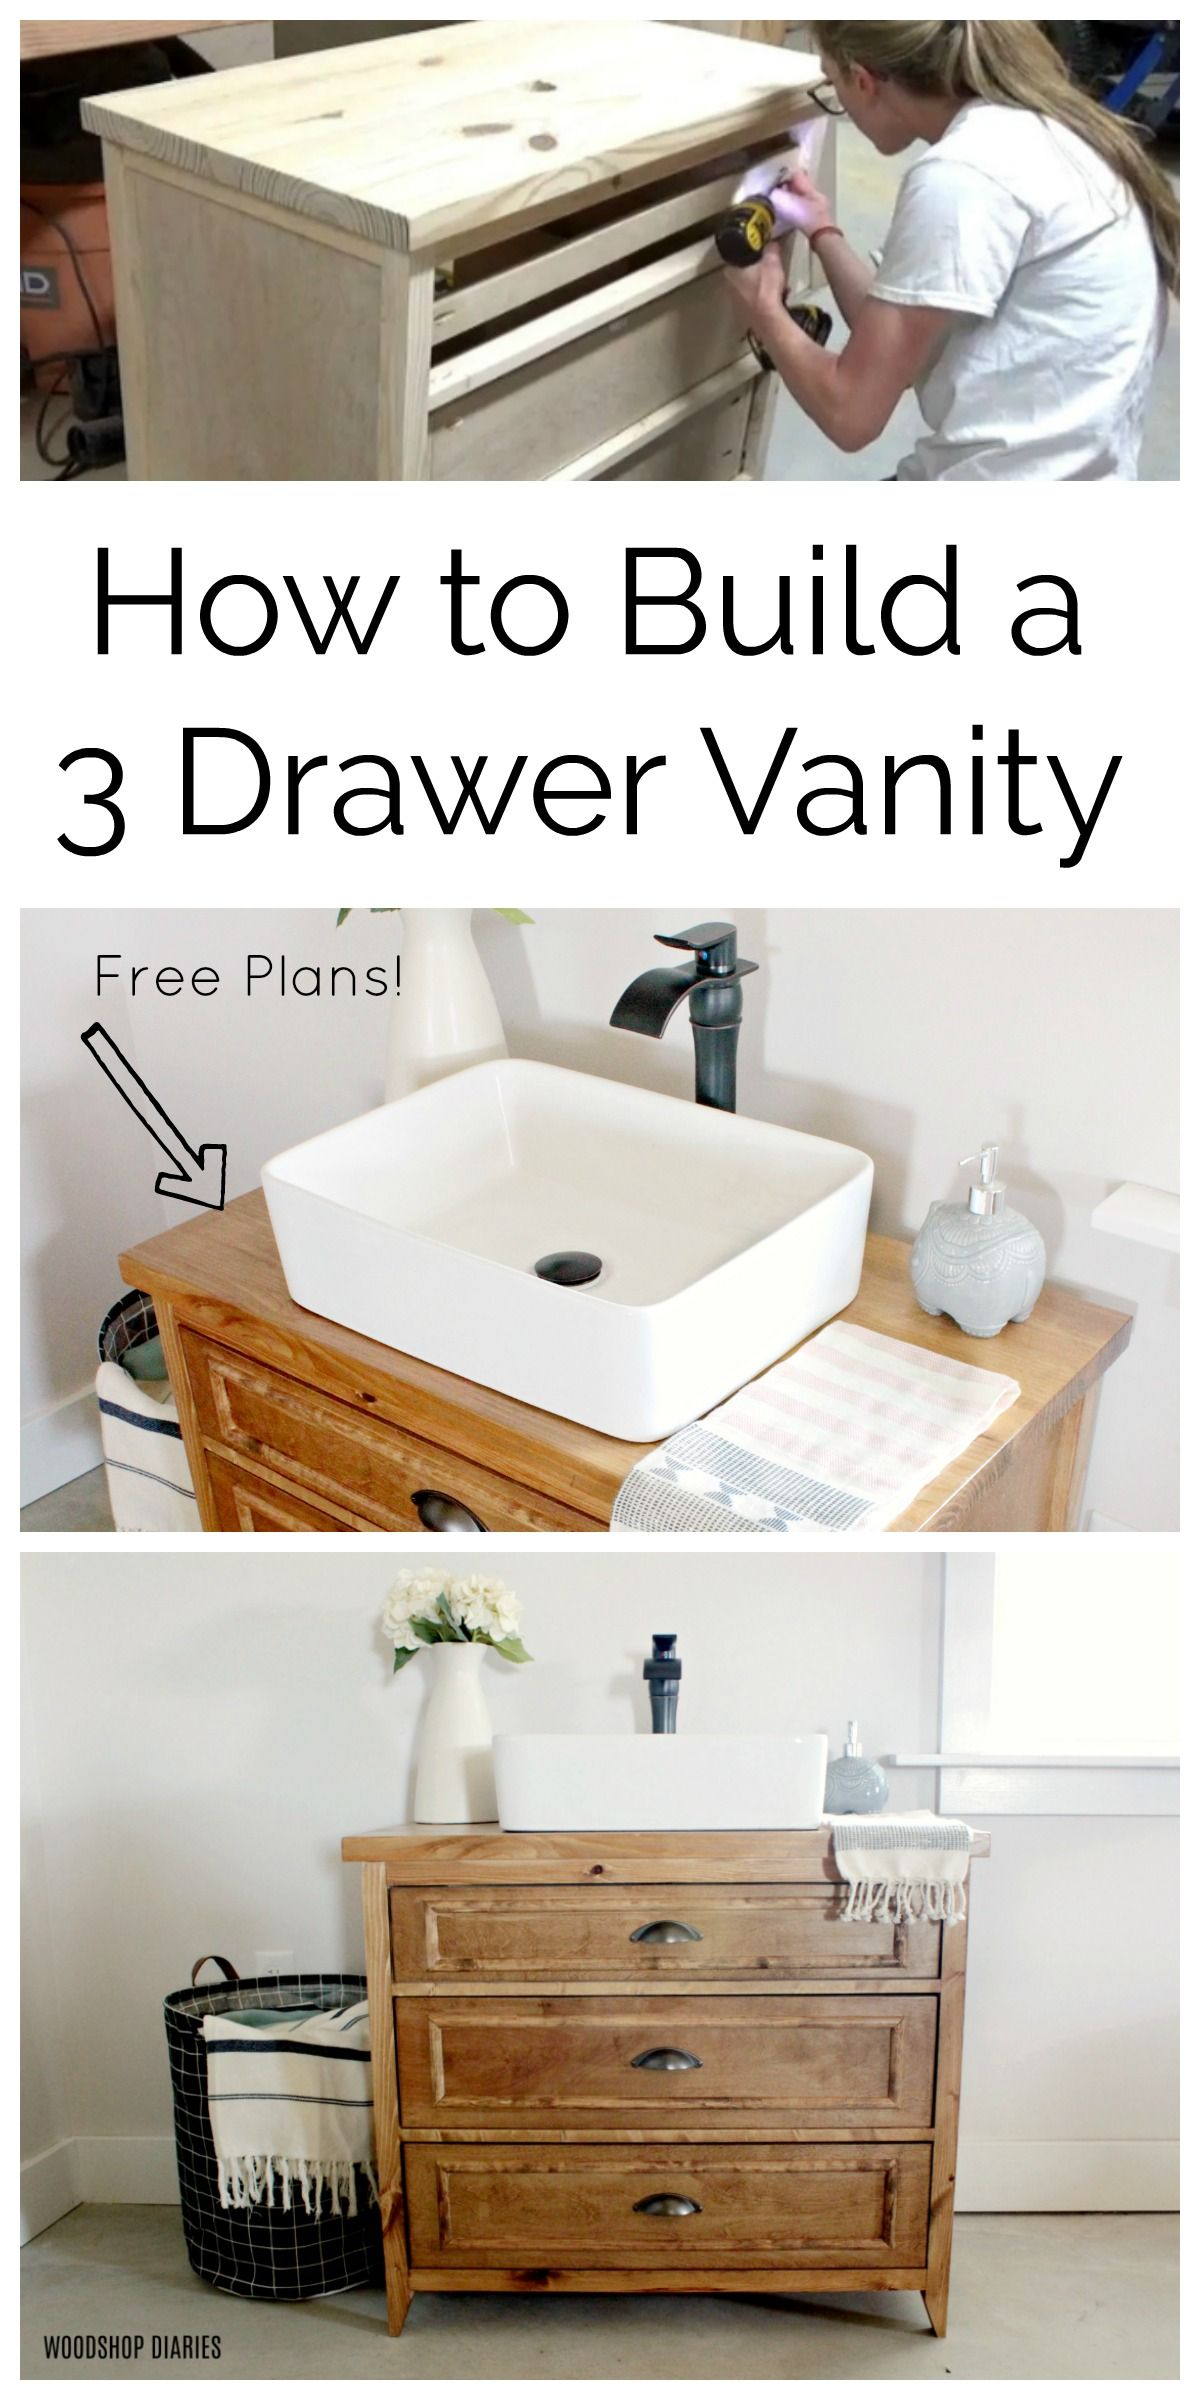 How To Build A Diy Vanity With Drawers Free Plans And Video